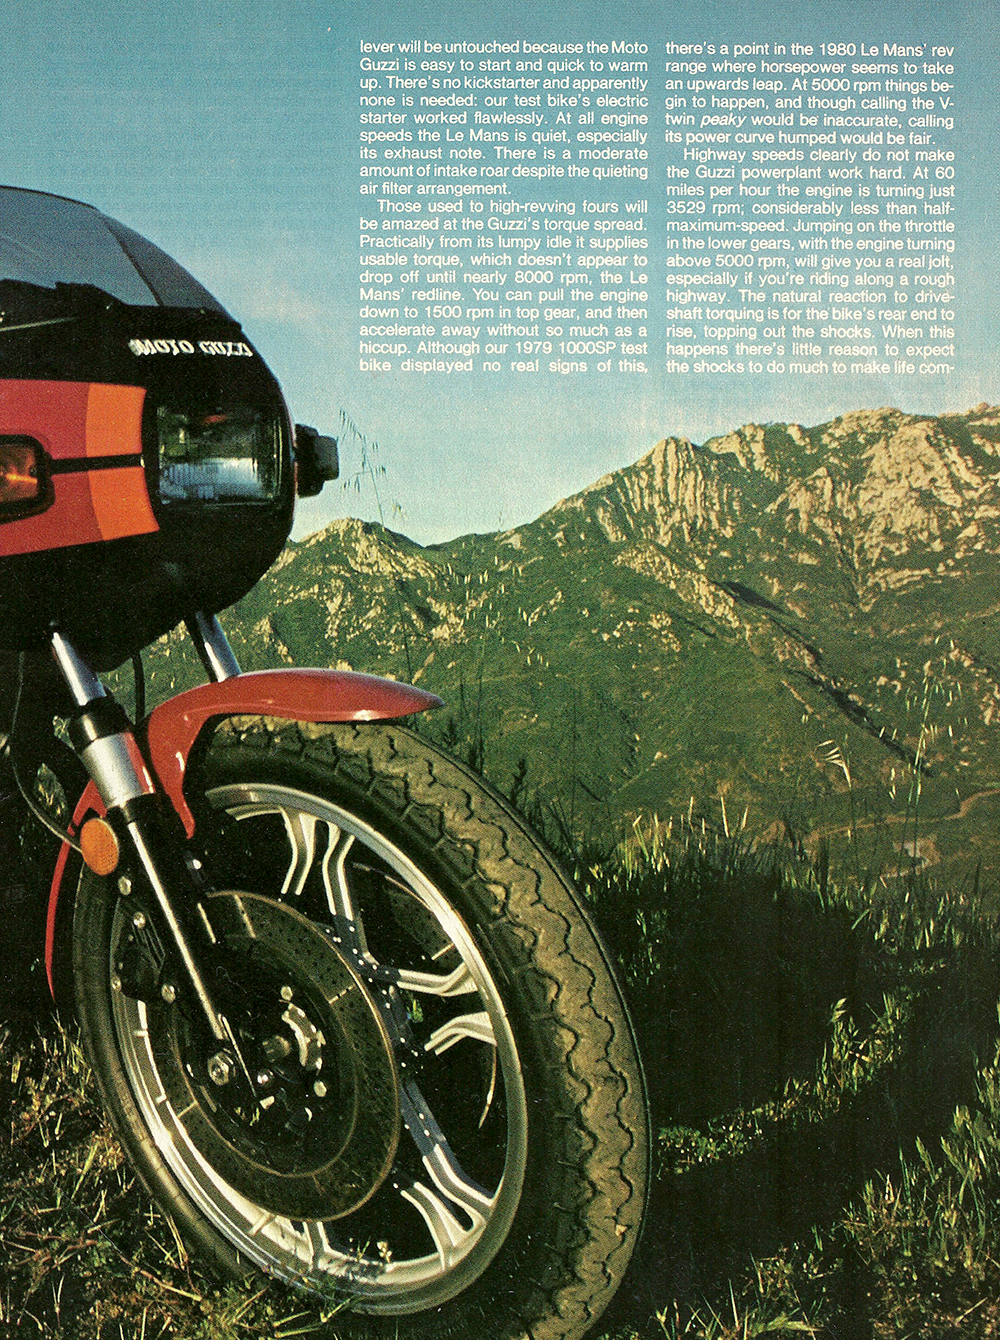 1980 Moto Guzzi Lemans CX100 road test 04.jpg